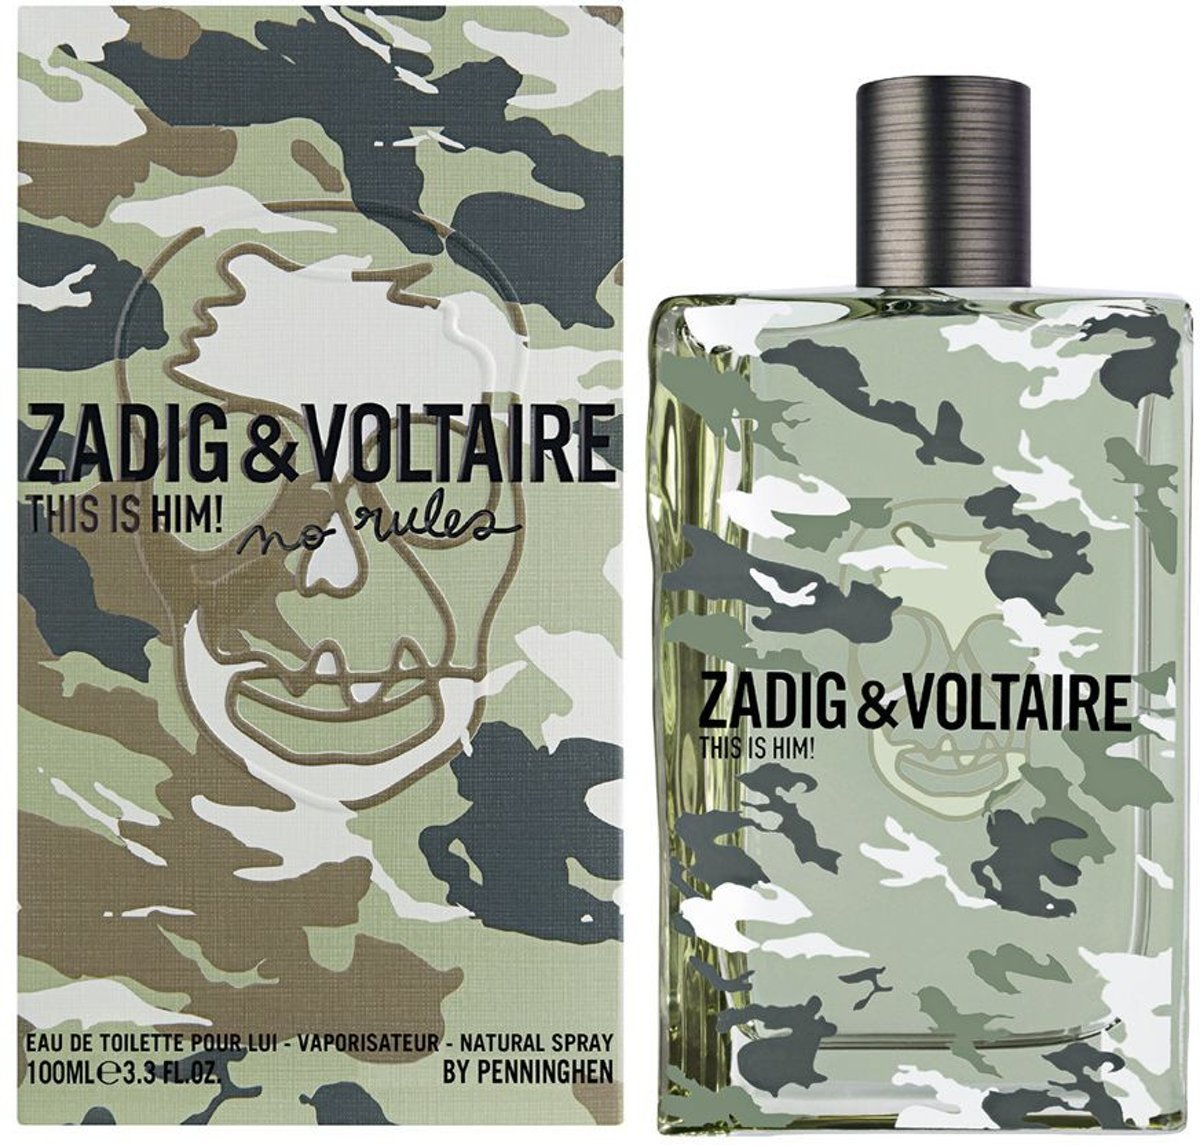 Zadig & Voltaire This is Him! No Rules Eau de Toilette 100ml